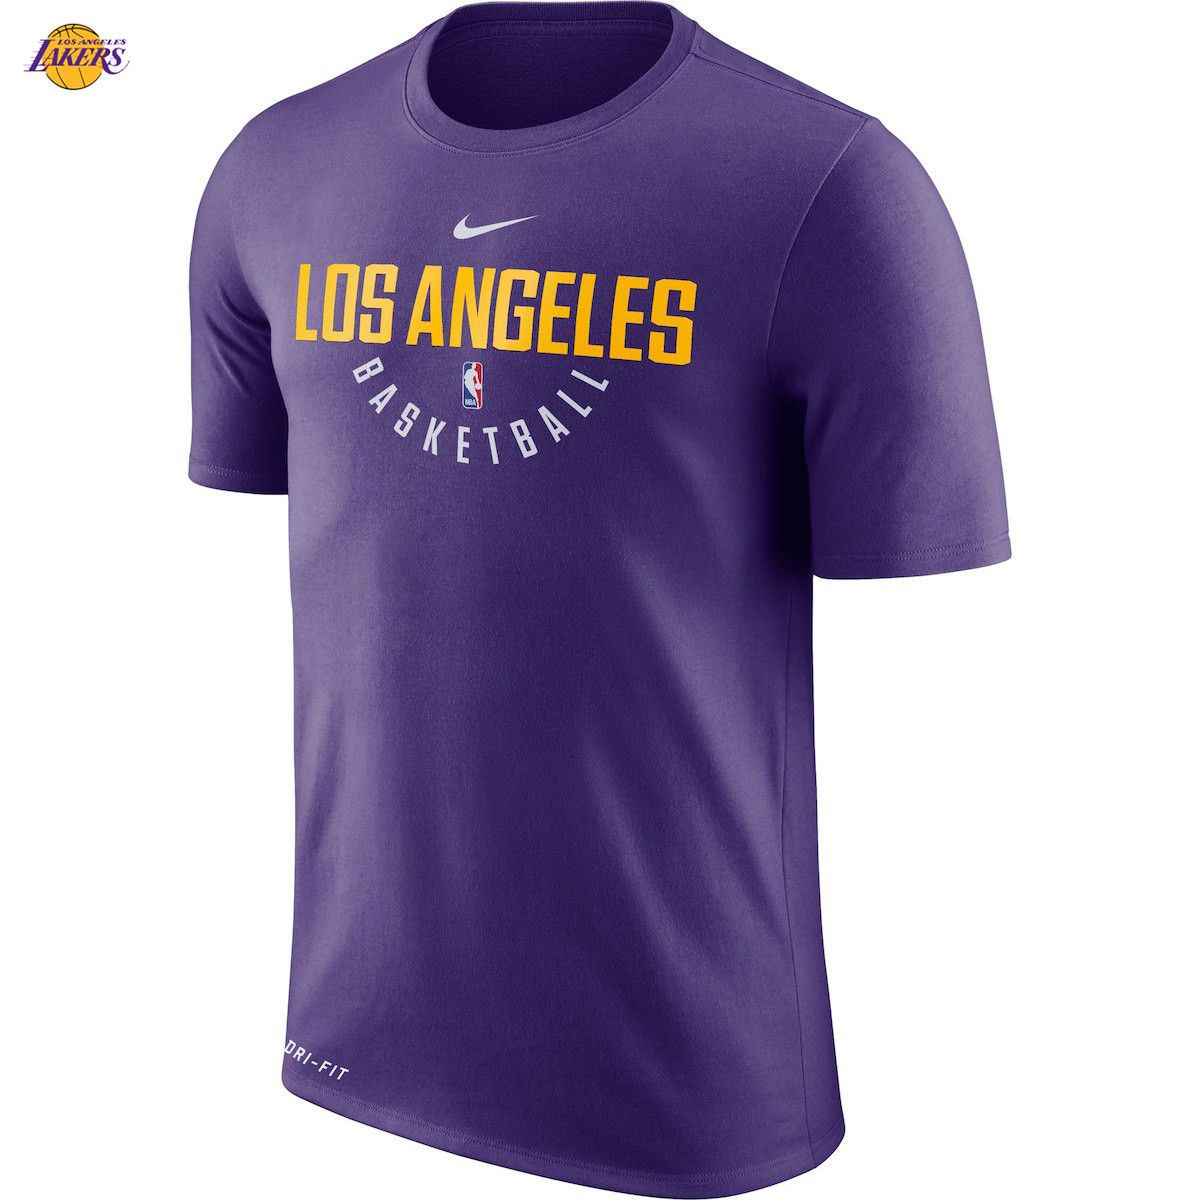 e4b85df6d57b Los Angeles Lakers Nike Practice Performance T-Shirt 2018 LeBron James  Purple NEW King WOW!! the king is now a lakers player! show your support